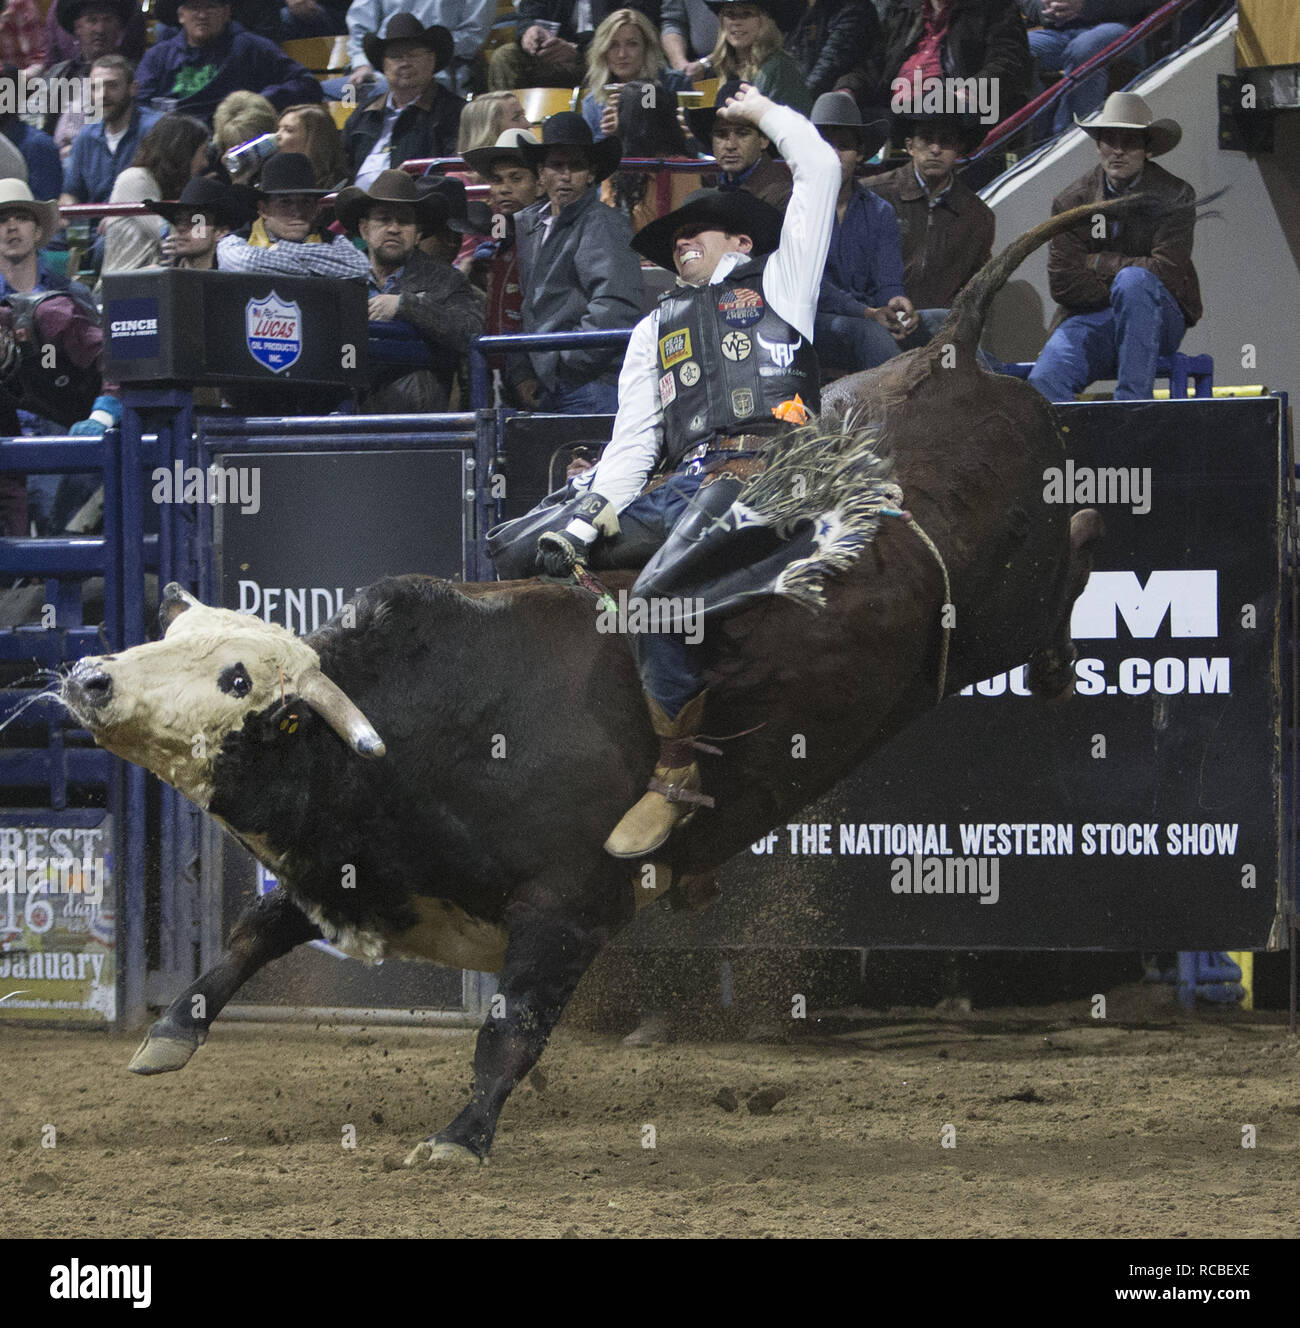 Denver, Colorado, USA. 14th Jan, 2019. Bull Rider TAYLOR TOVES of Stephenville, TX rides Pennywise during the 25th. Mexican Rodeo at the National Western Stock Show at the Denver Coliseum Monday evening. Credit: Hector Acevedo/ZUMA Wire/Alamy Live News - Stock Image